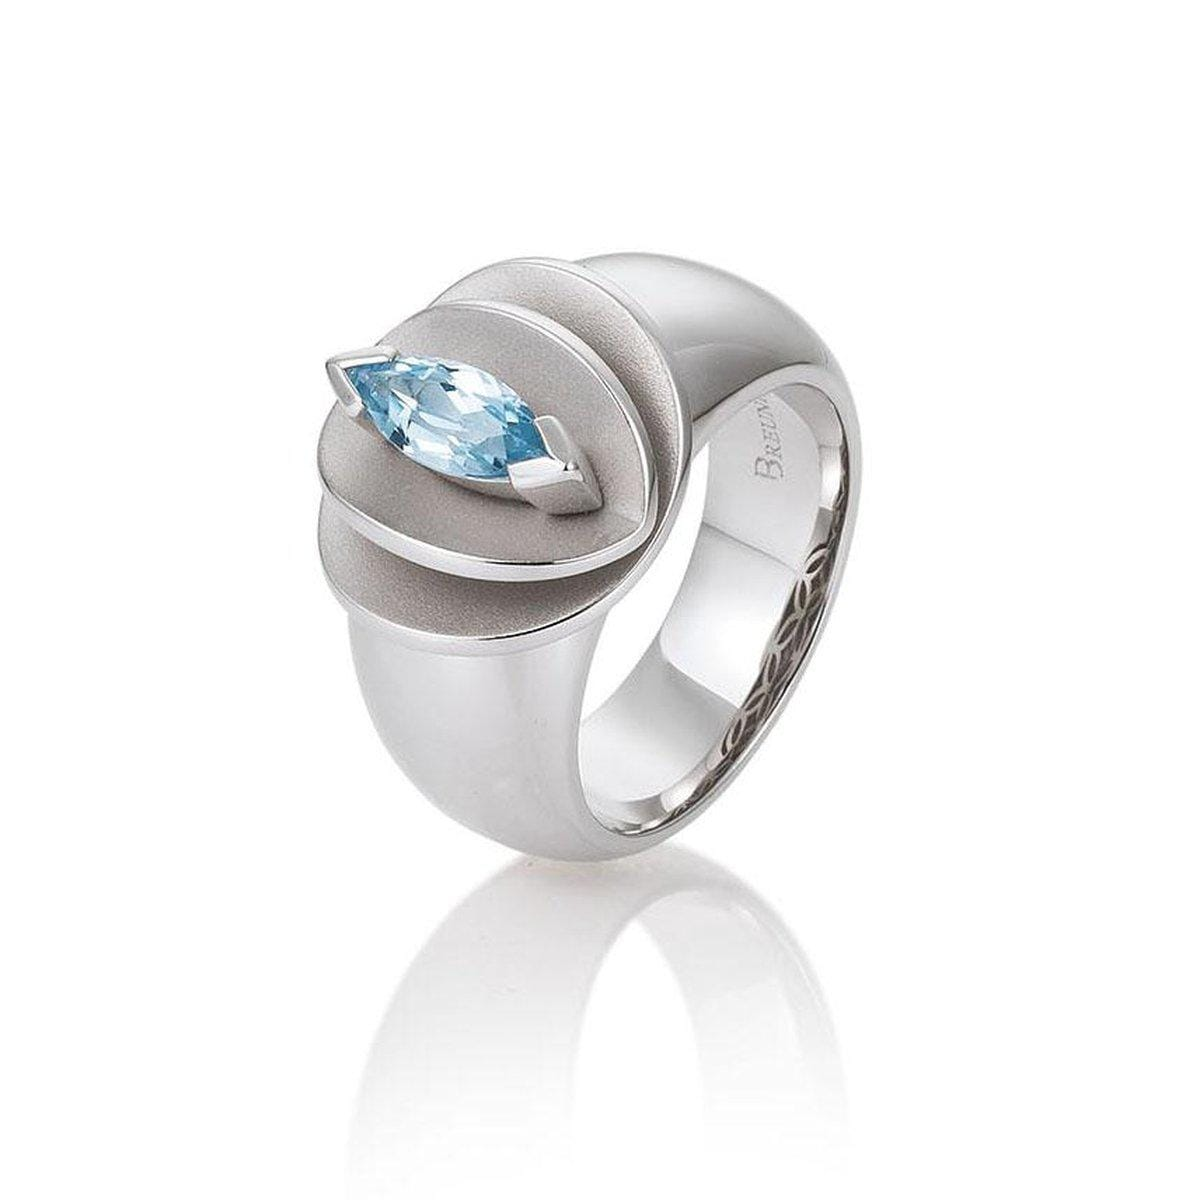 Sterling Silver Blue Topaz Ring - 42/03272-Breuning-Renee Taylor Gallery